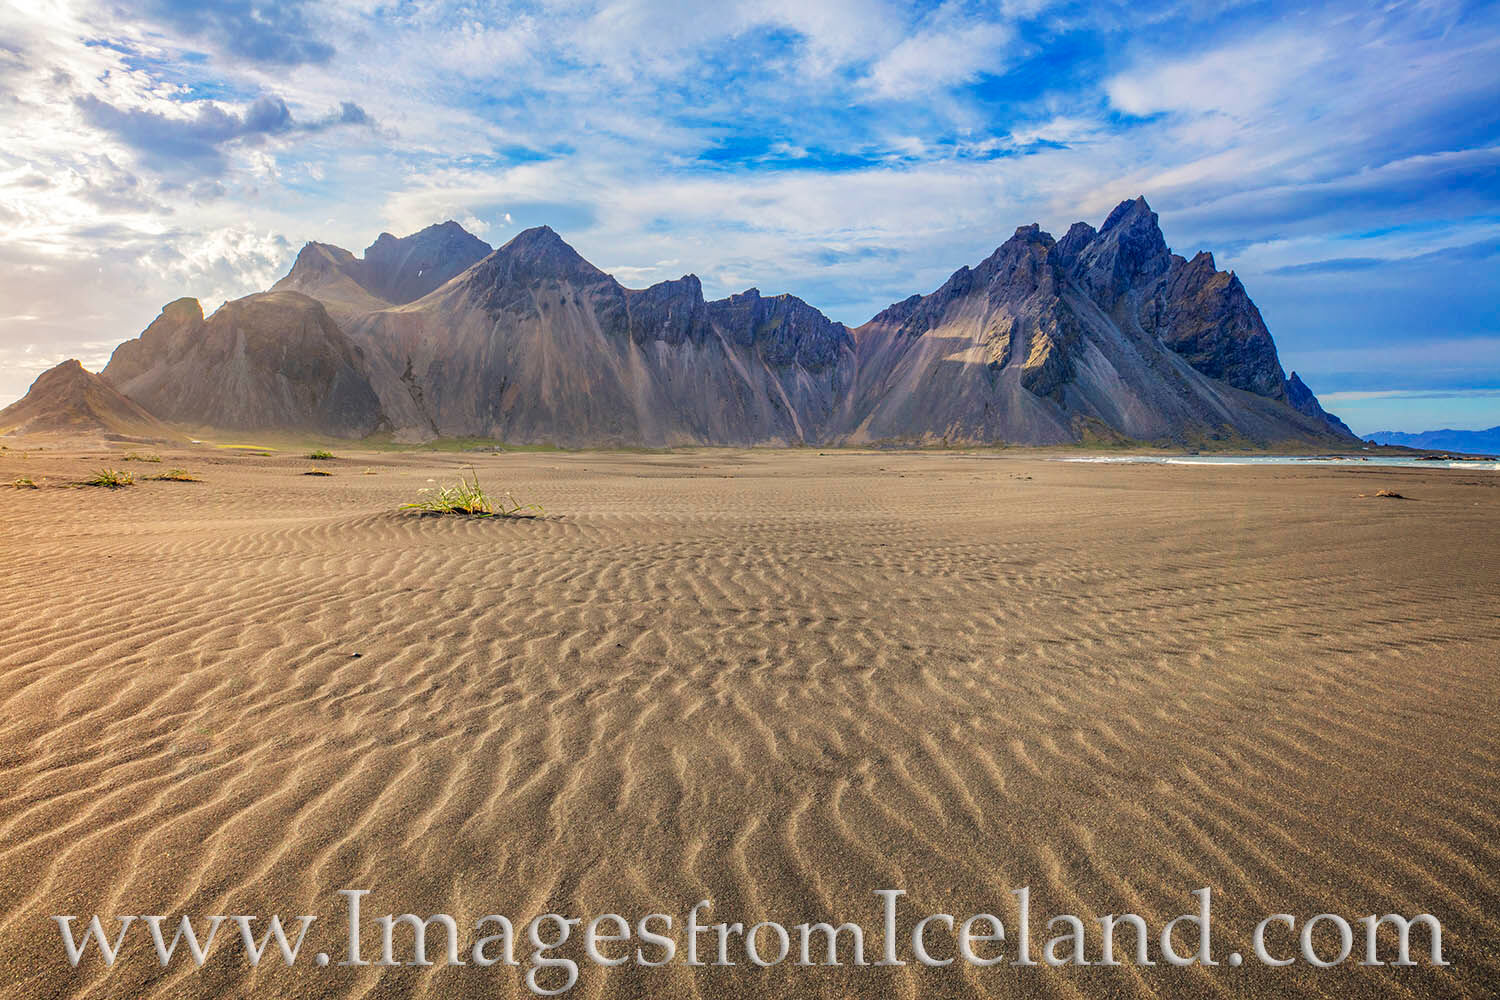 The sand dunes near the beach at Vestrahorn are in constant motion from the ocean breeze, always changing their lines and angles...